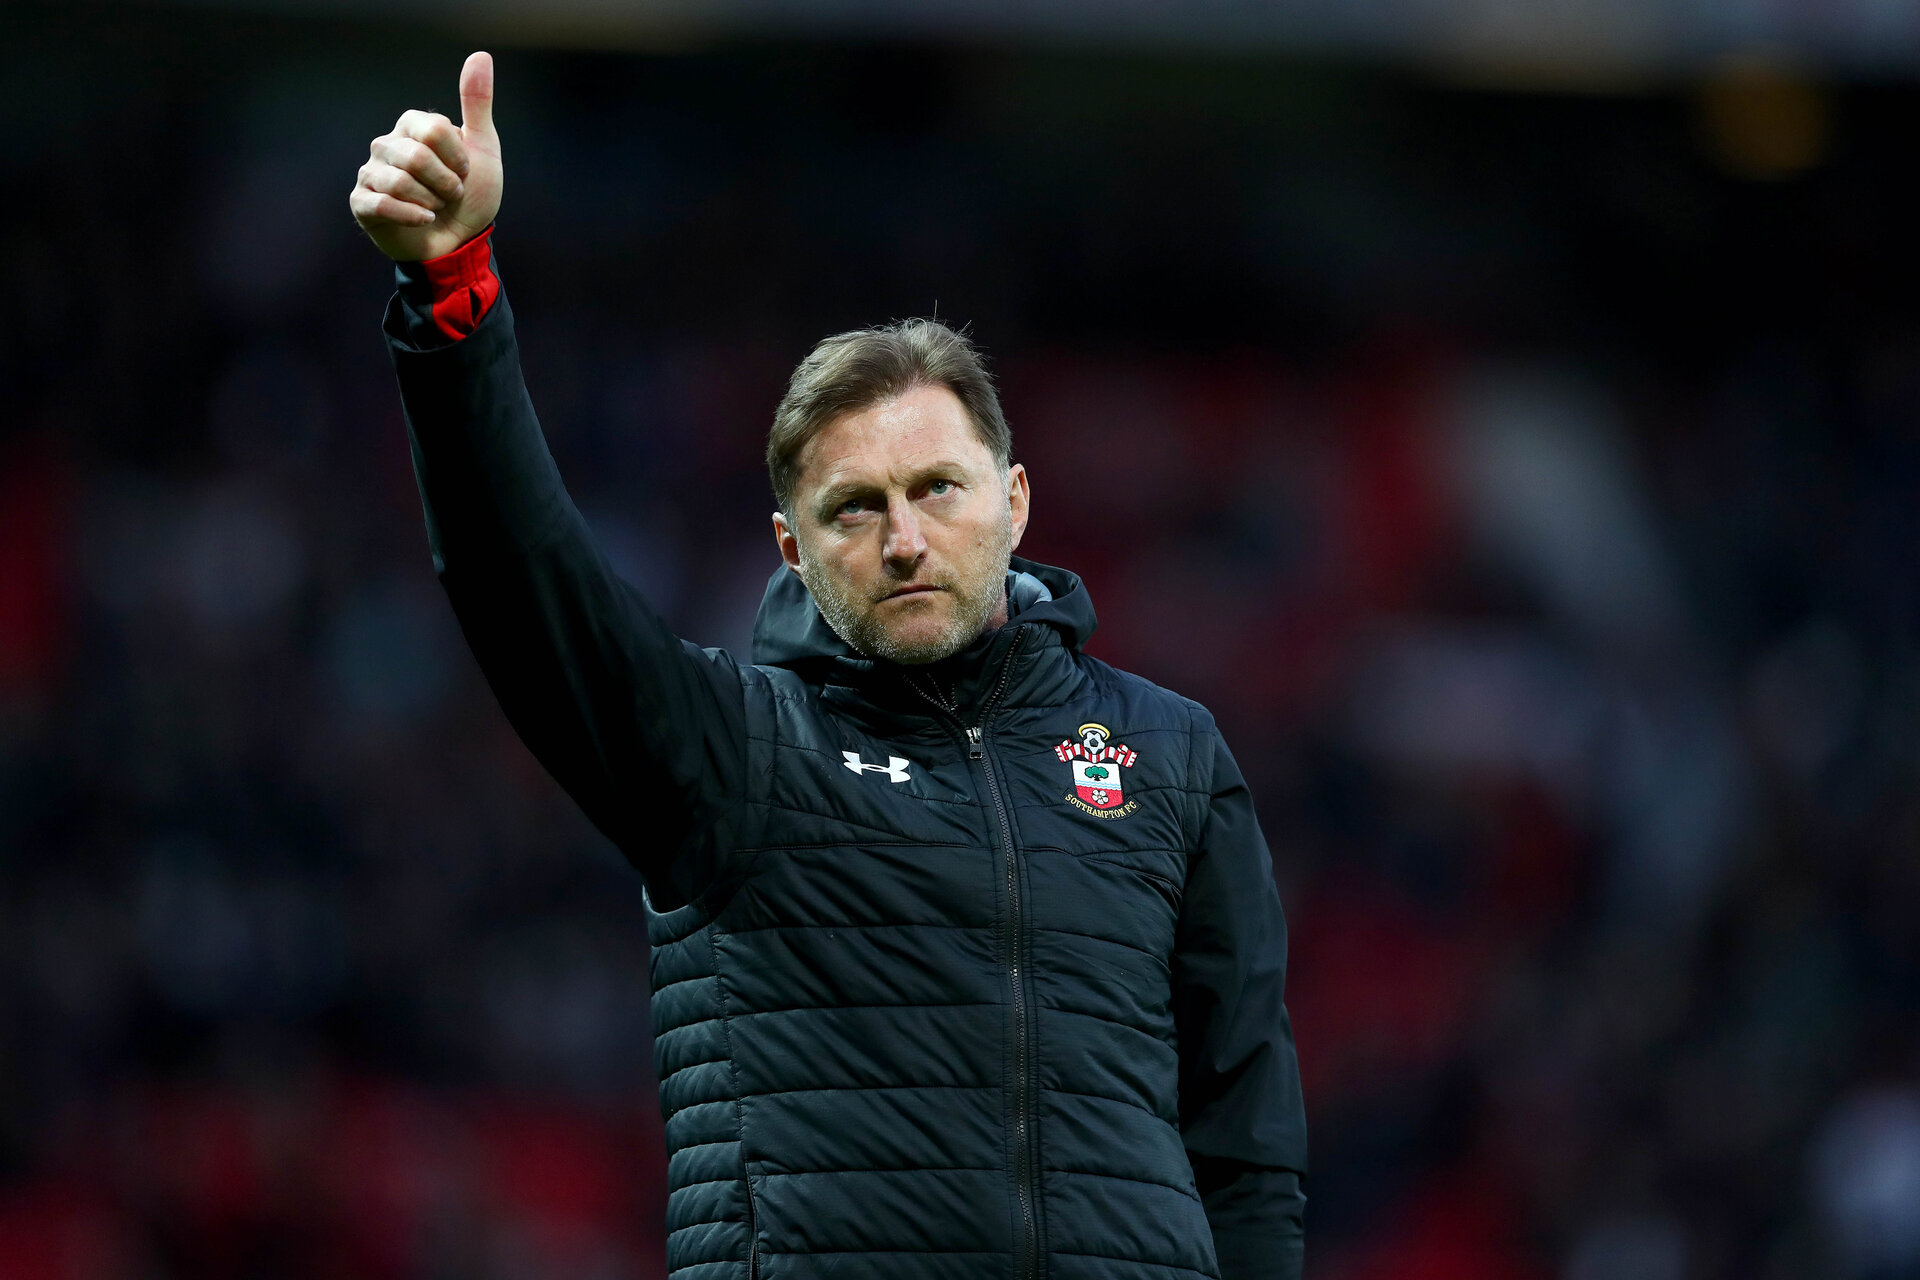 MANCHESTER, ENGLAND - MARCH 02: Ralph Hasenhuttl of during the Premier League match between Manchester United and Southampton FC at Old Trafford on March 02, 2019 in Manchester, United Kingdom. (Photo by Matt Watson/Southampton FC via Getty Images)